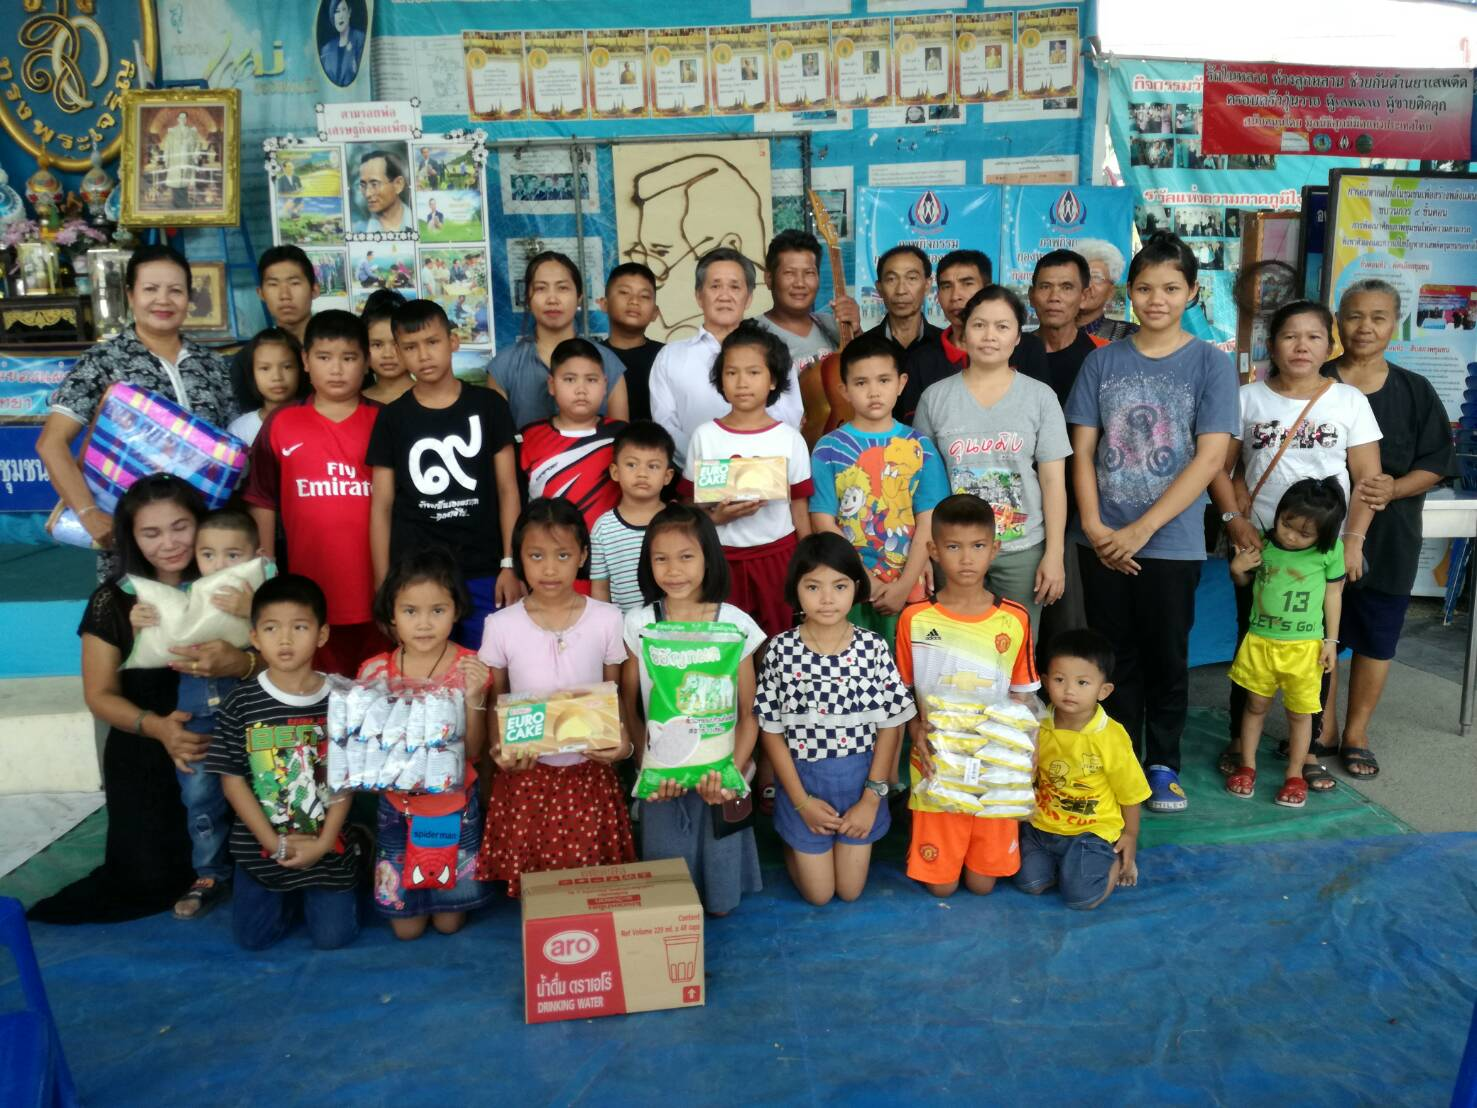 The Christian Club of Pattaya has begun teaching English to youths from the Soi Kophai Community every Saturday.